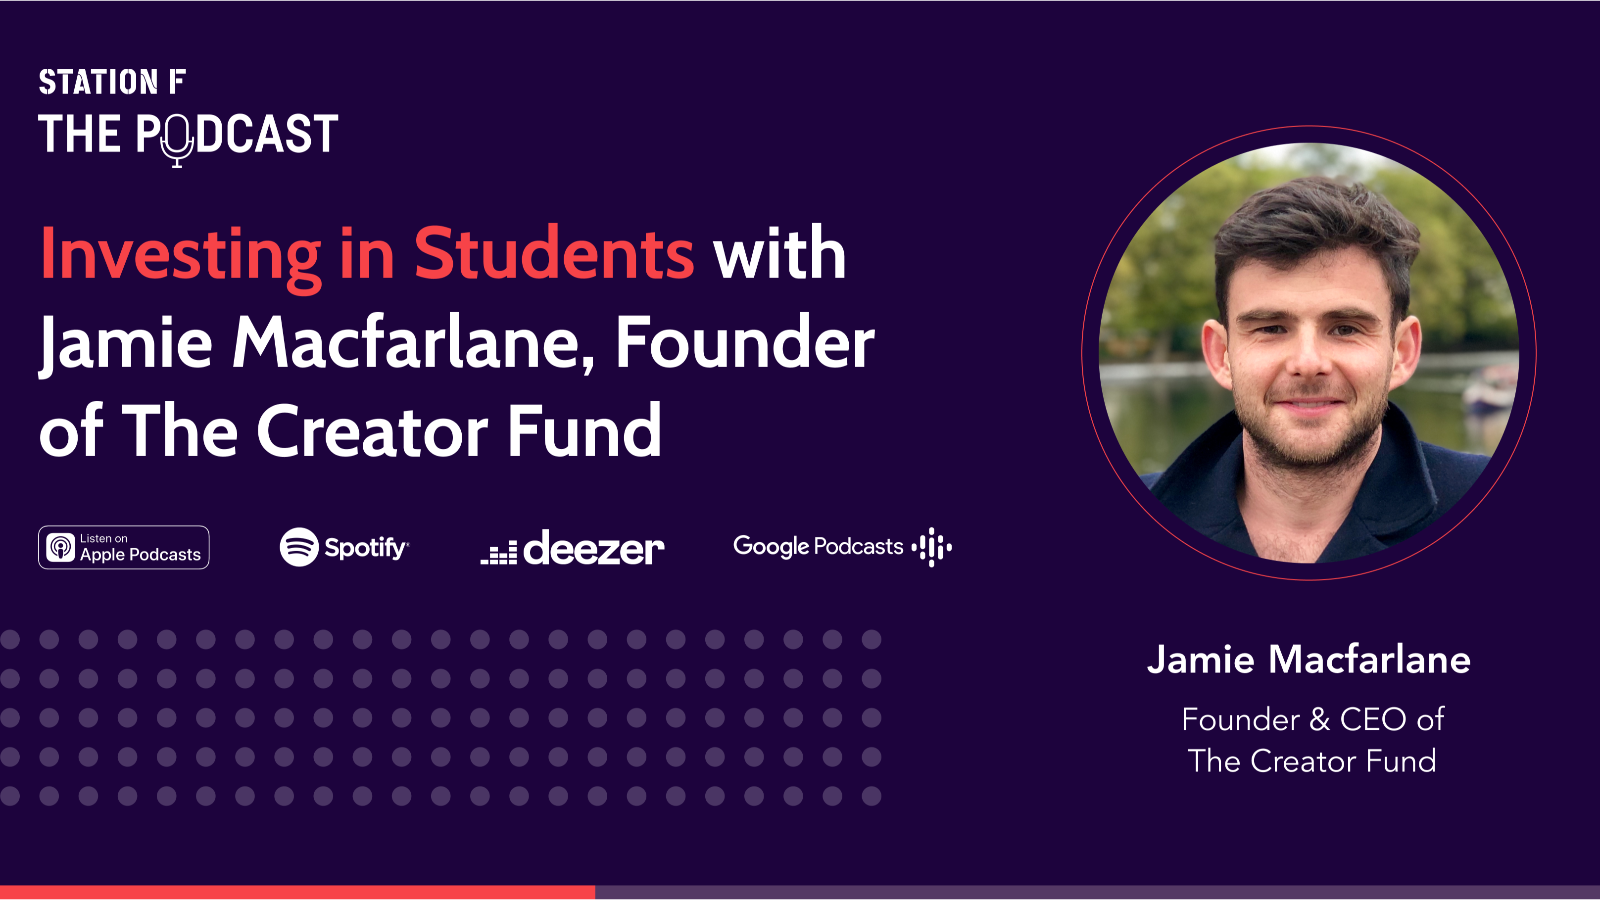 Thumbnail for news article called Investing in Students with Jamie Macfarlane, Founder & CEO of The Creator Fund